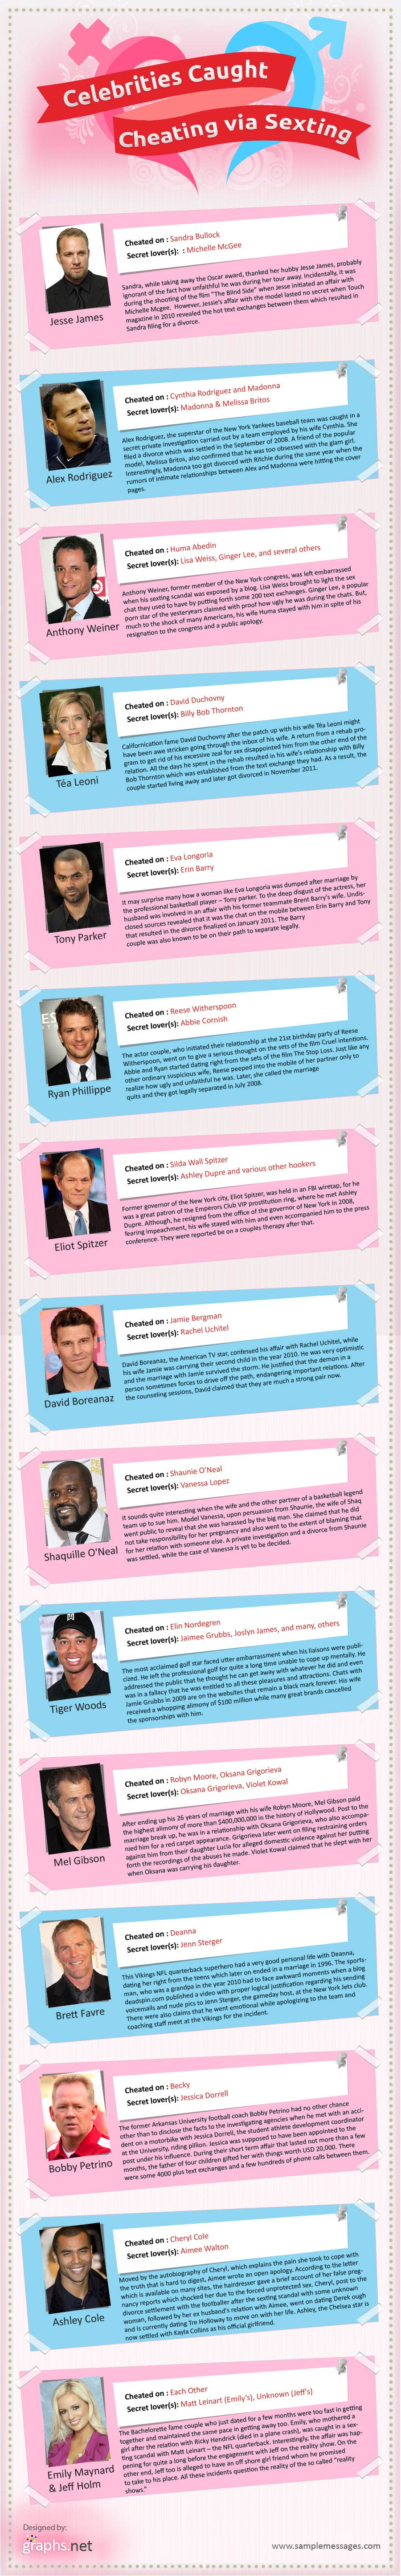 Celebrities Sexting Scandals-Infographic